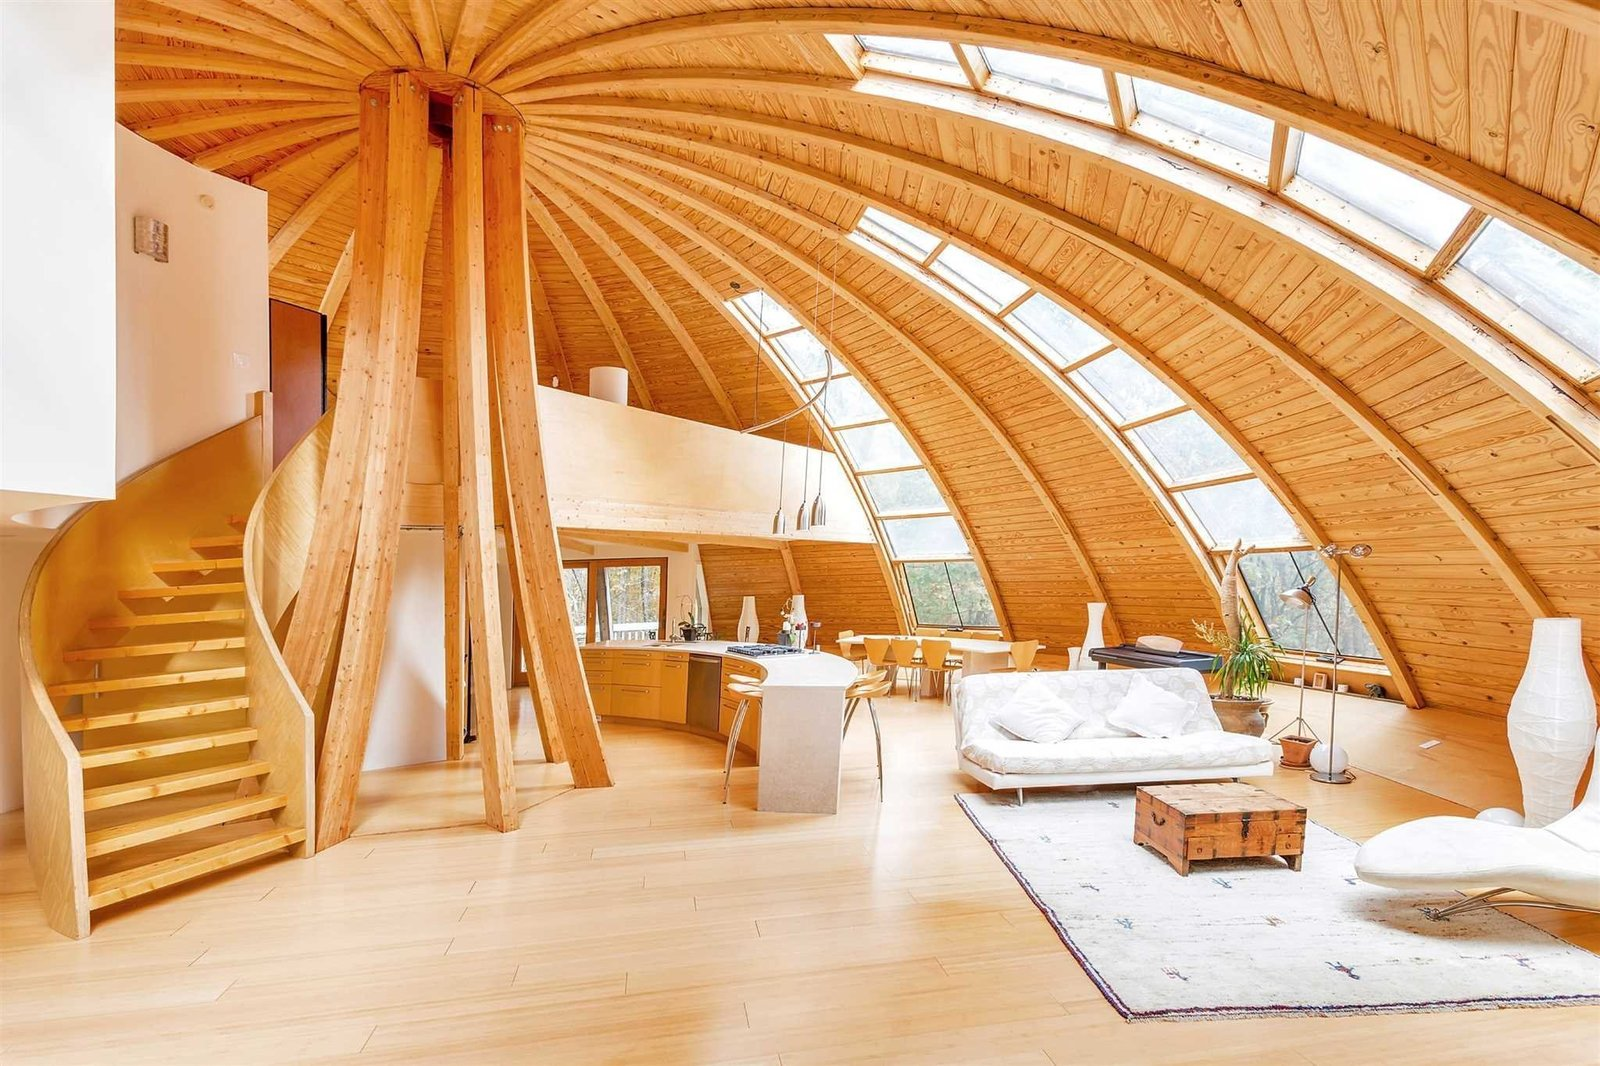 Make Your Dome Dreams Come True With These 12 Kit Home Companies - Dwell